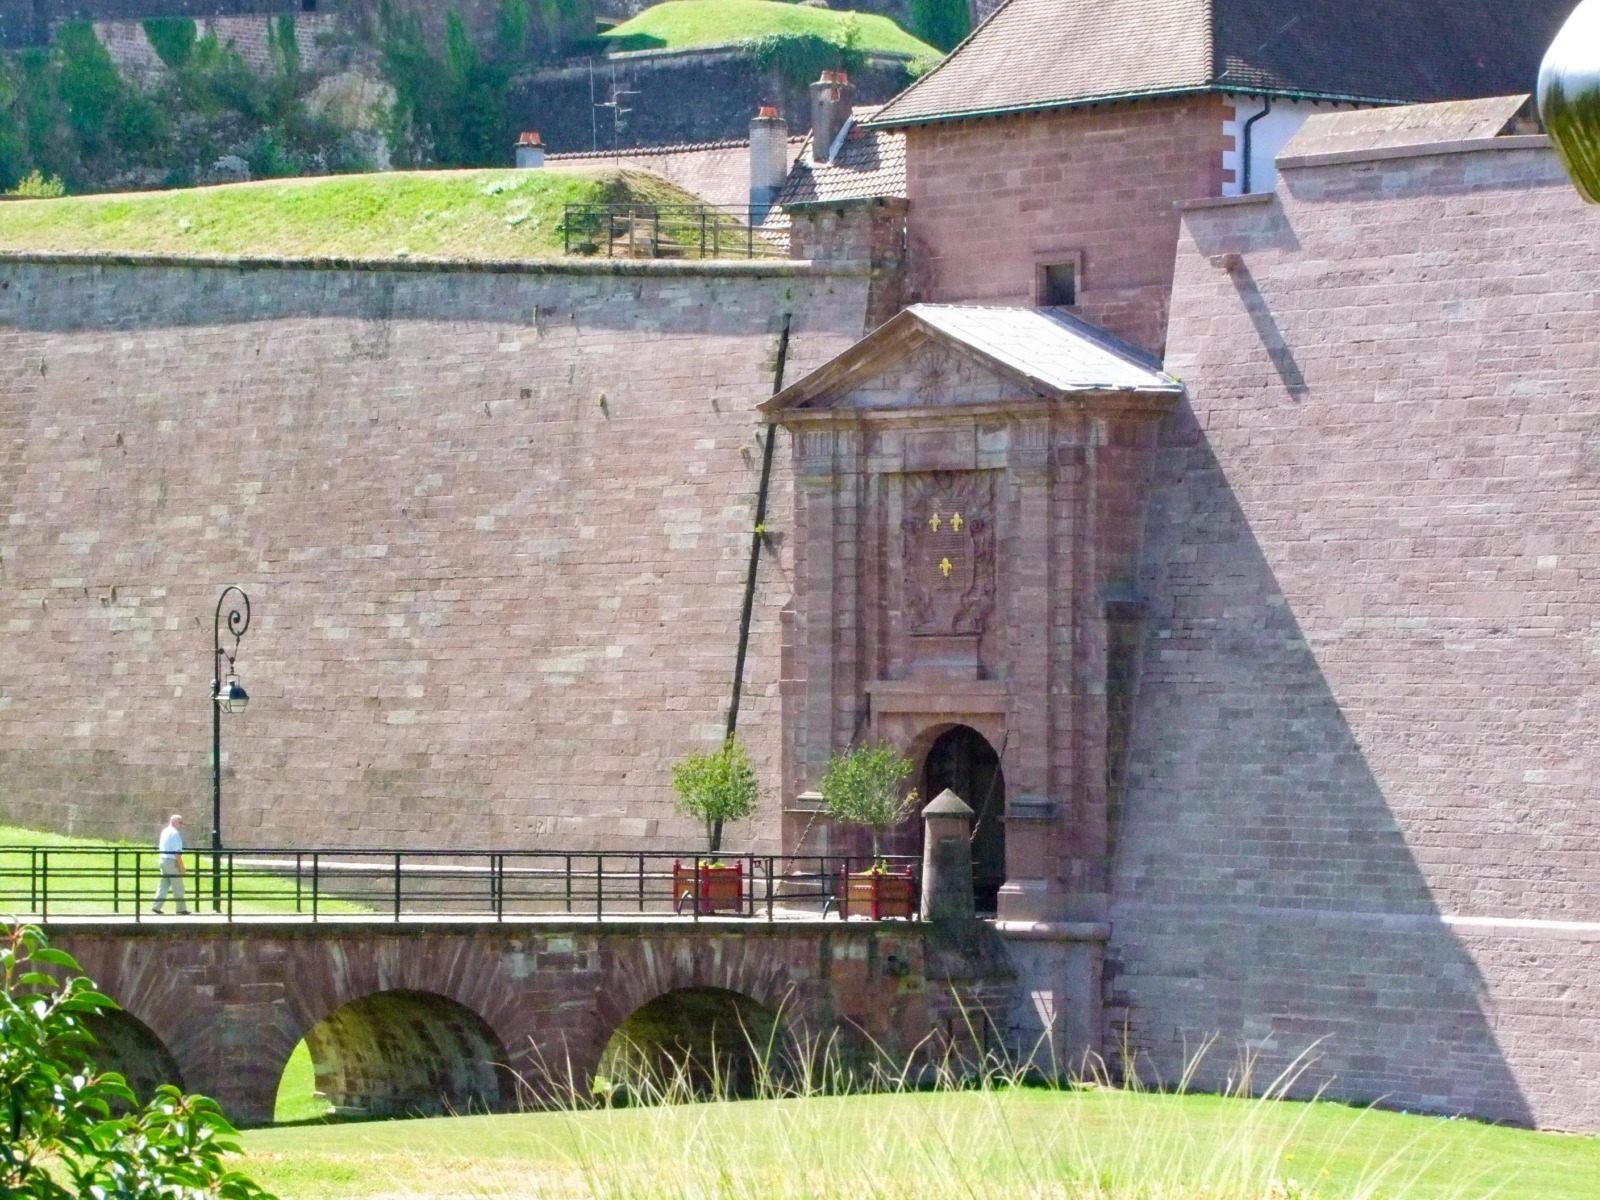 Fortified City Gates of Alsace - Porte de Brisach, Belfort © Andrzej Harassek - licence [CC BY-SA 3.0] from Wikimedia Commons